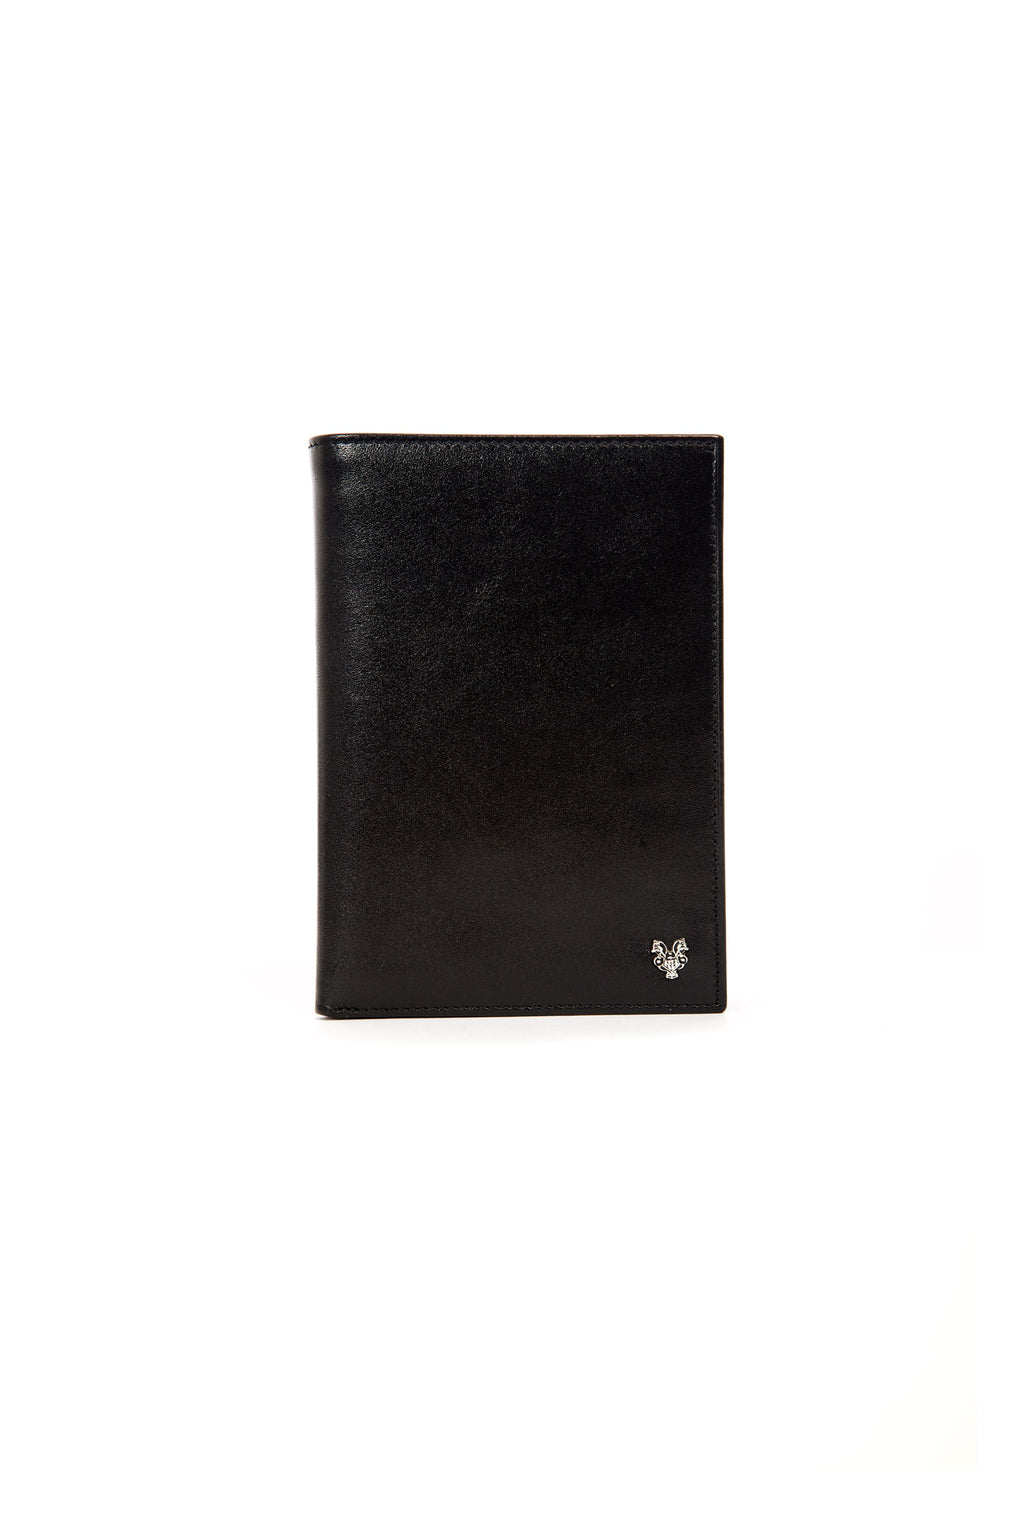 Romano Botta Black Original  Leather Wallet